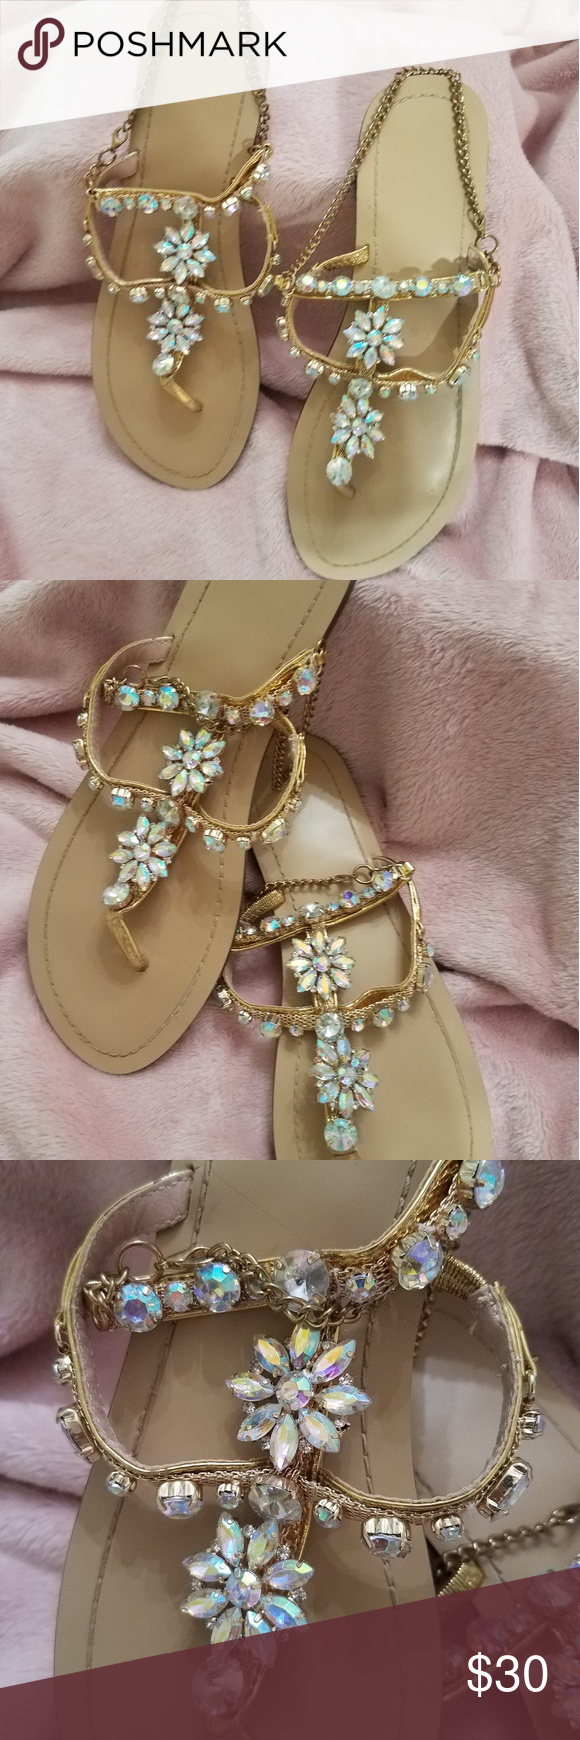 Gorgeous Jeweled Sandals Absolutely gorgeous Jeweled Sandals. Gold chain around ankle. Worn only one time for my honeymoon. Perfect for a beach wedding, honeymoon, bridal shower or any event. Your jeweled feet will be the star of your event!  Gorgeous Jeweled Sandals Absolutely gorgeous Jeweled Sandals. Gold chain around ankle. Worn only one time for my honeymoon. Perfect for a beach wedding, honeymoon, bridal shower or any event. Your jeweled feet will be the star of your event! #beachhoneymoonclothes